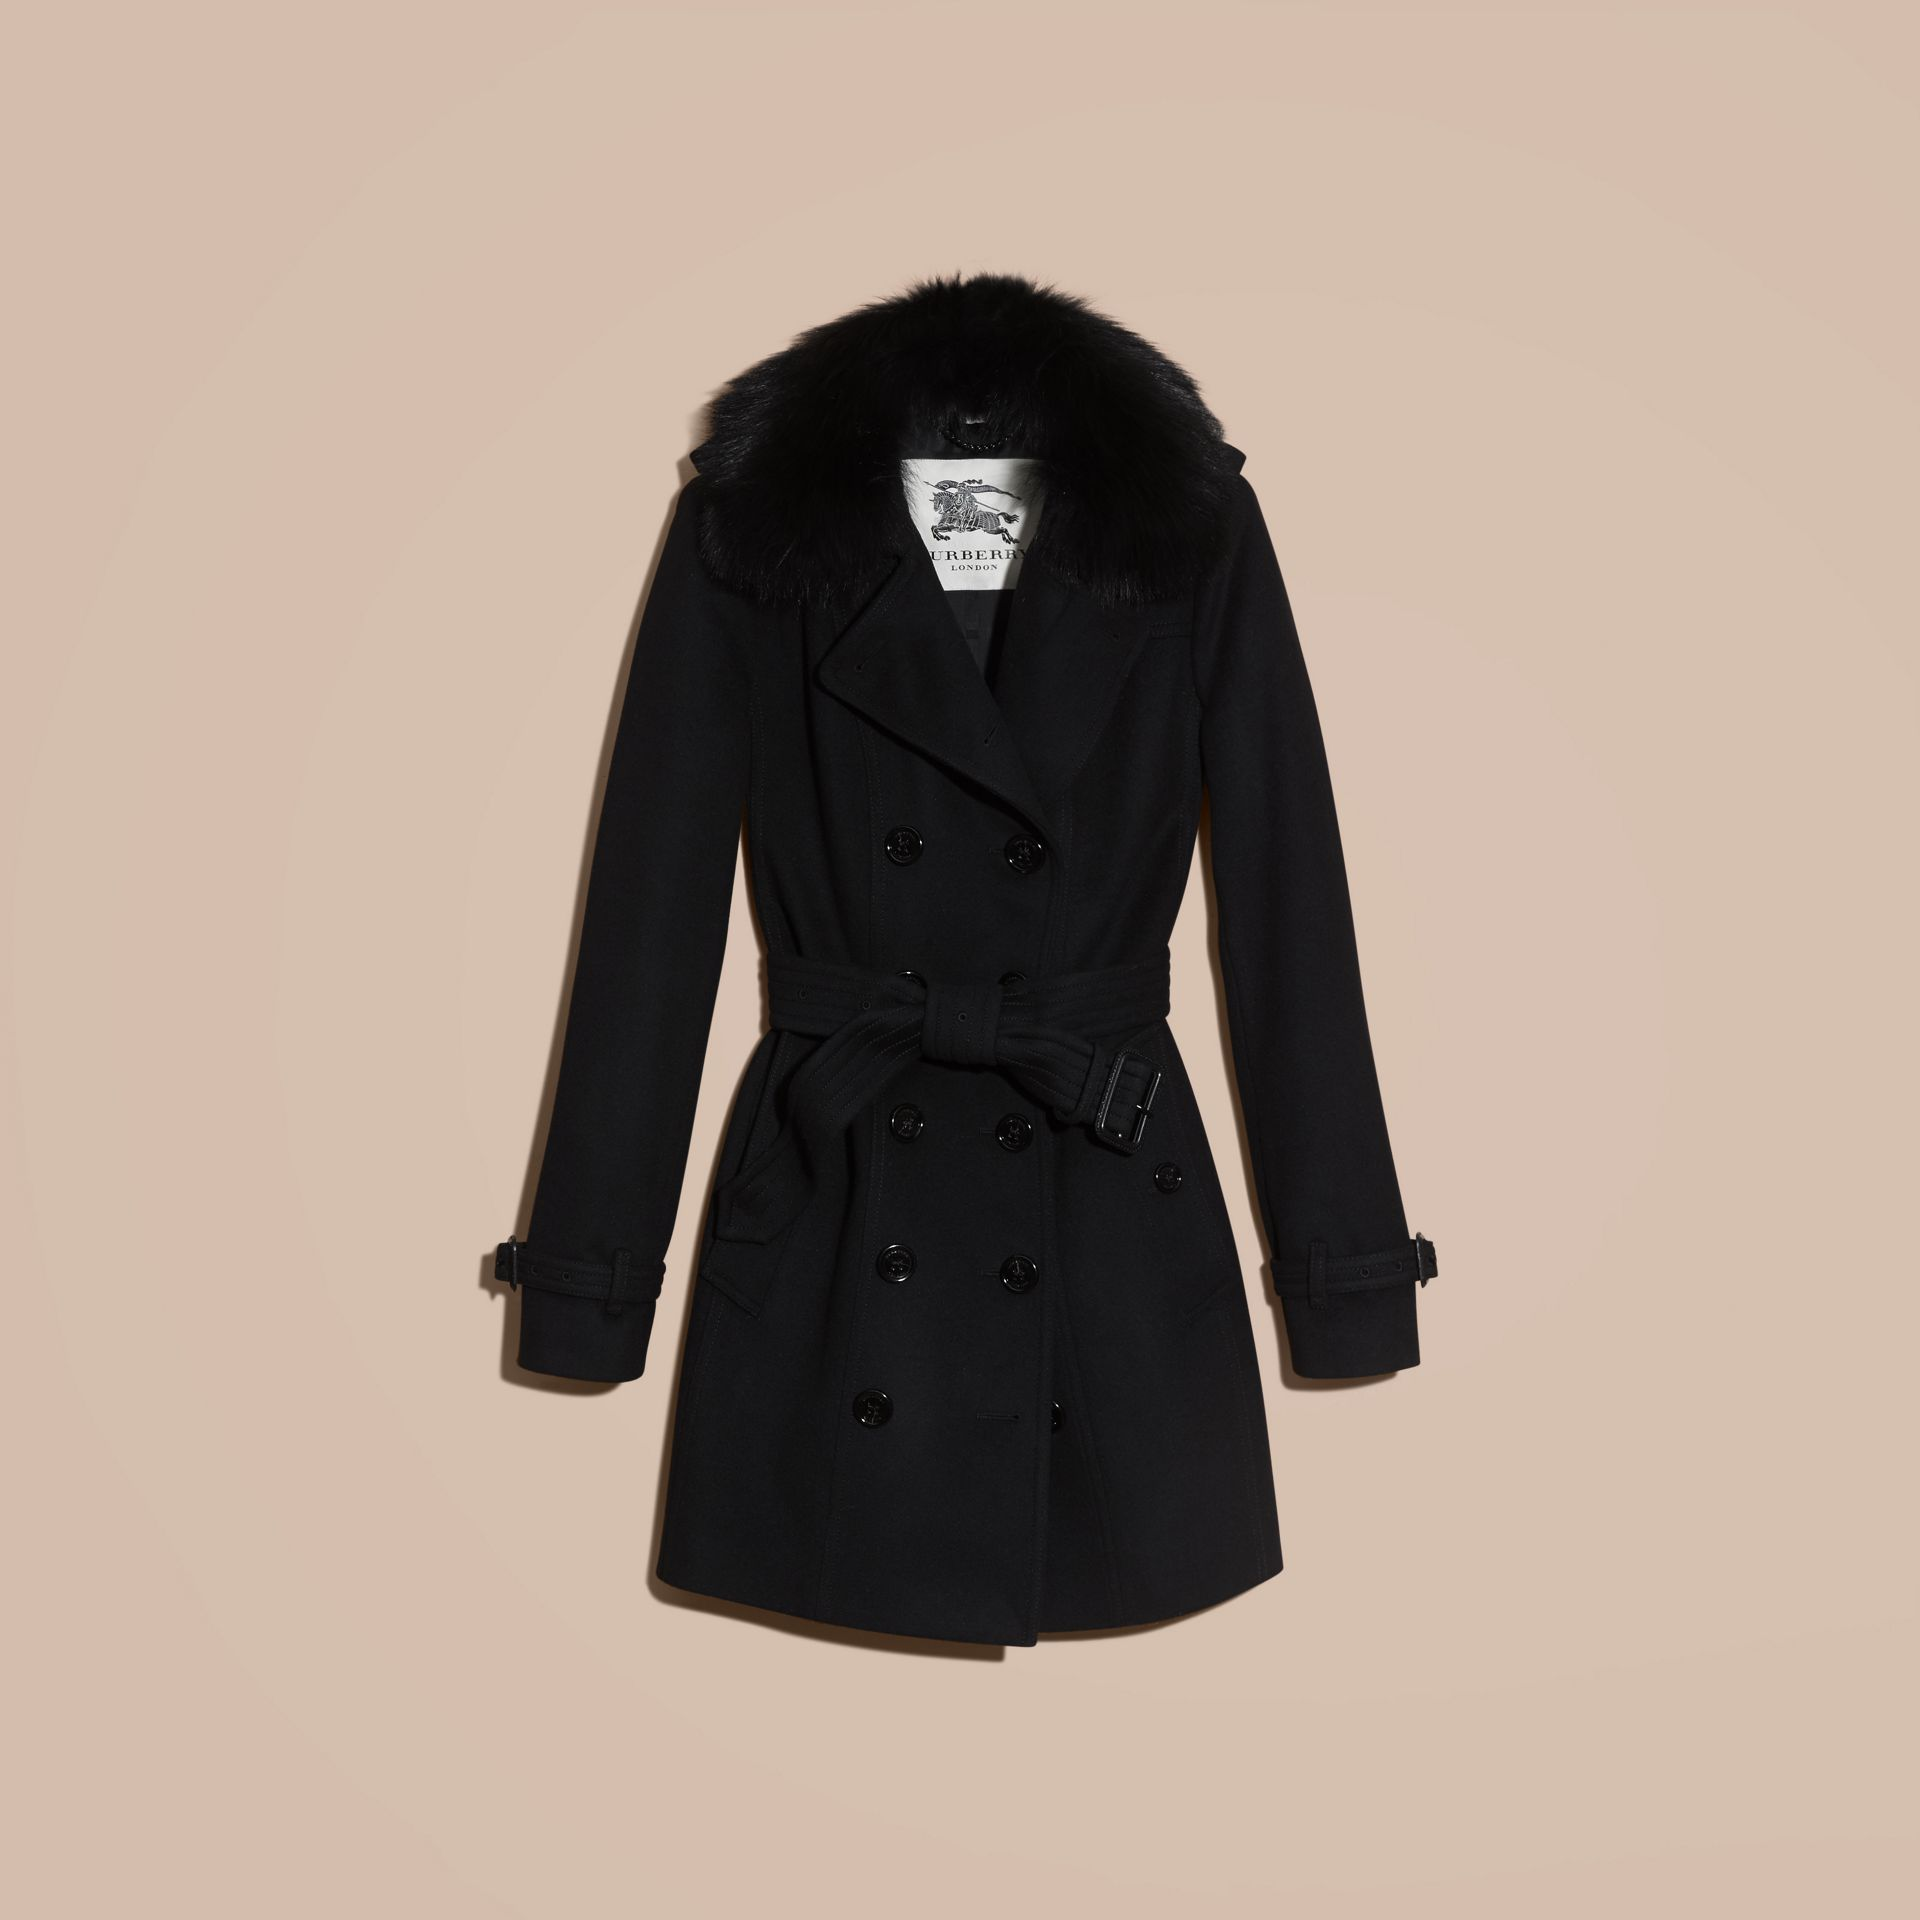 Wool Cashmere Trench Coat with Fur Collar in Black - Women | Burberry Canada - gallery image 4